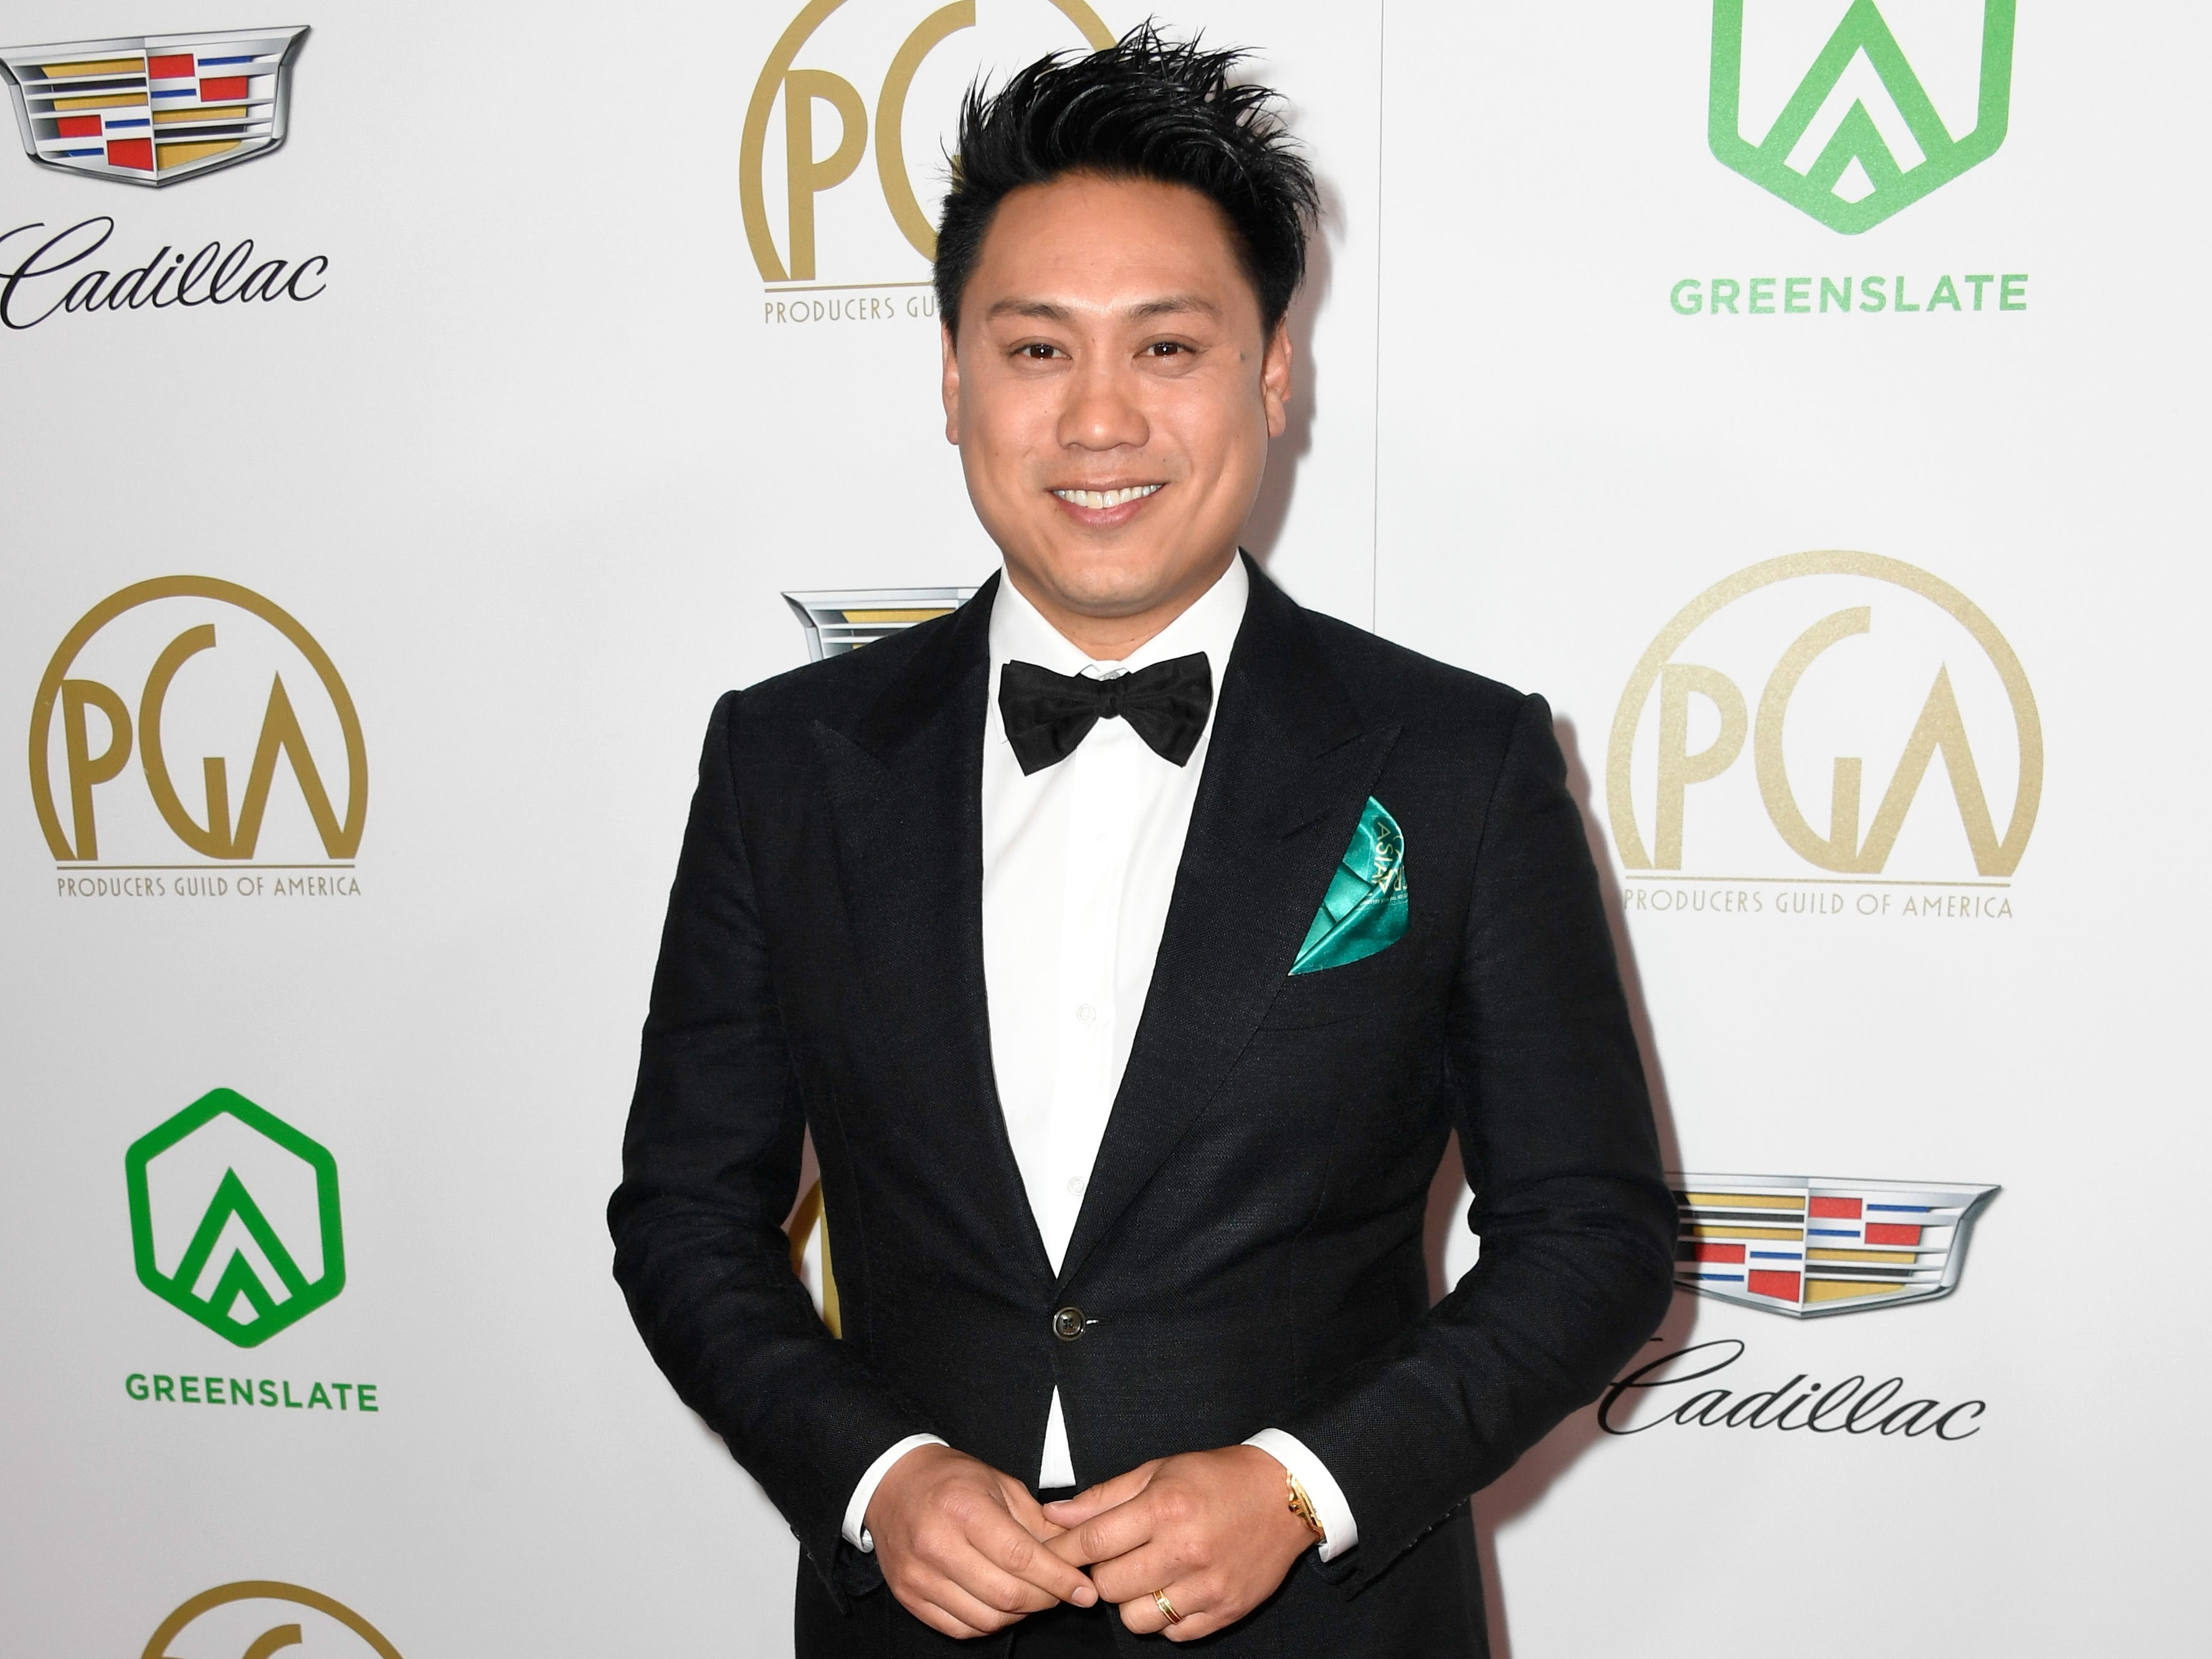 BEVERLY HILLS, CA - JANUARY 19:  Jon M. Chu attends the 30th annual Producers Guild Awards at The Beverly Hilton Hotel on January 19, 2019 in Beverly Hills, California.  (Photo by Frazer Harrison/Getty Images) ORG XMIT: 775277375 ORIG FILE ID: 1085405828